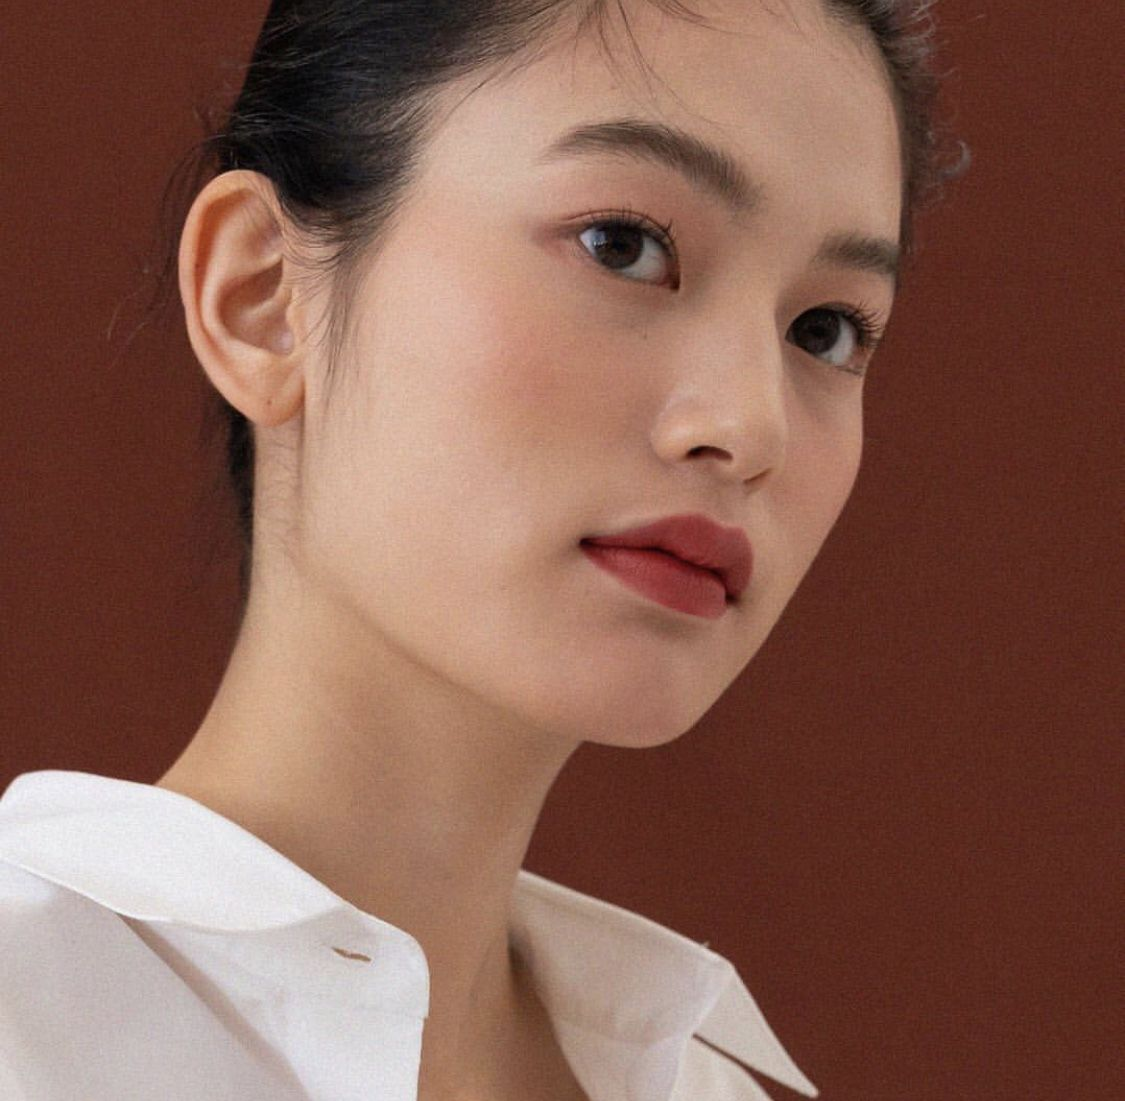 Photo of Pretty young Asian woman.